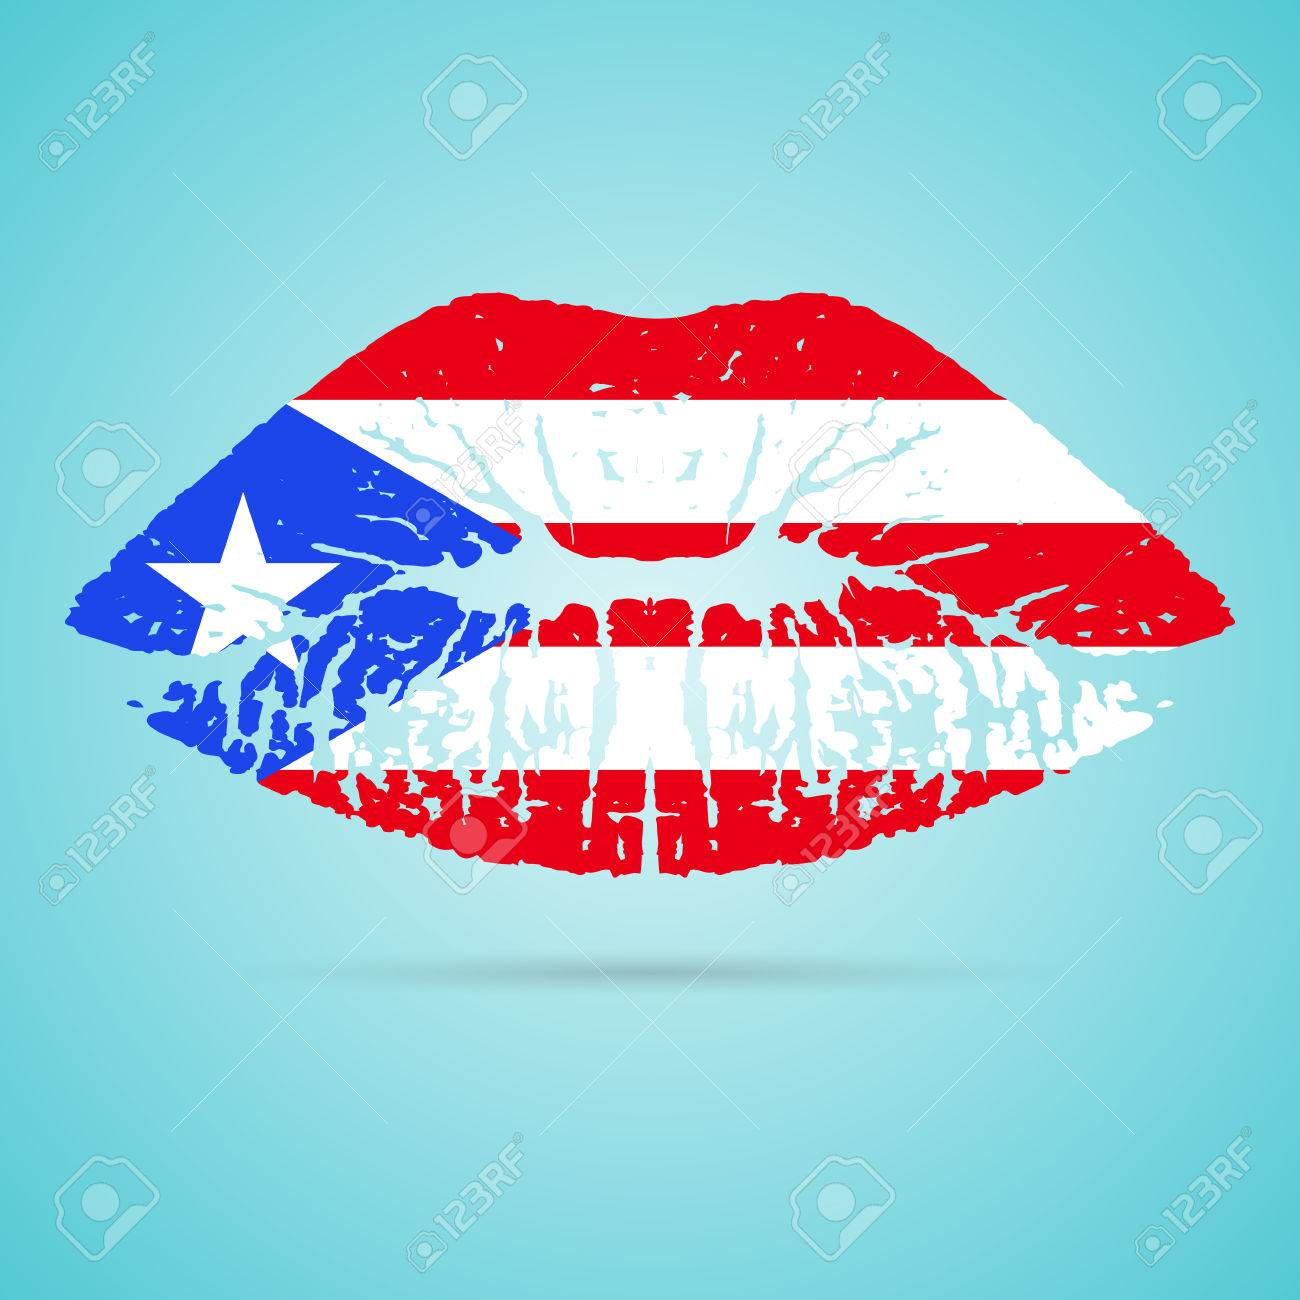 Puerto rico flag lipstick on the lips royalty free cliparts puerto rico flag lipstick on the lips stock vector 85817478 biocorpaavc Image collections